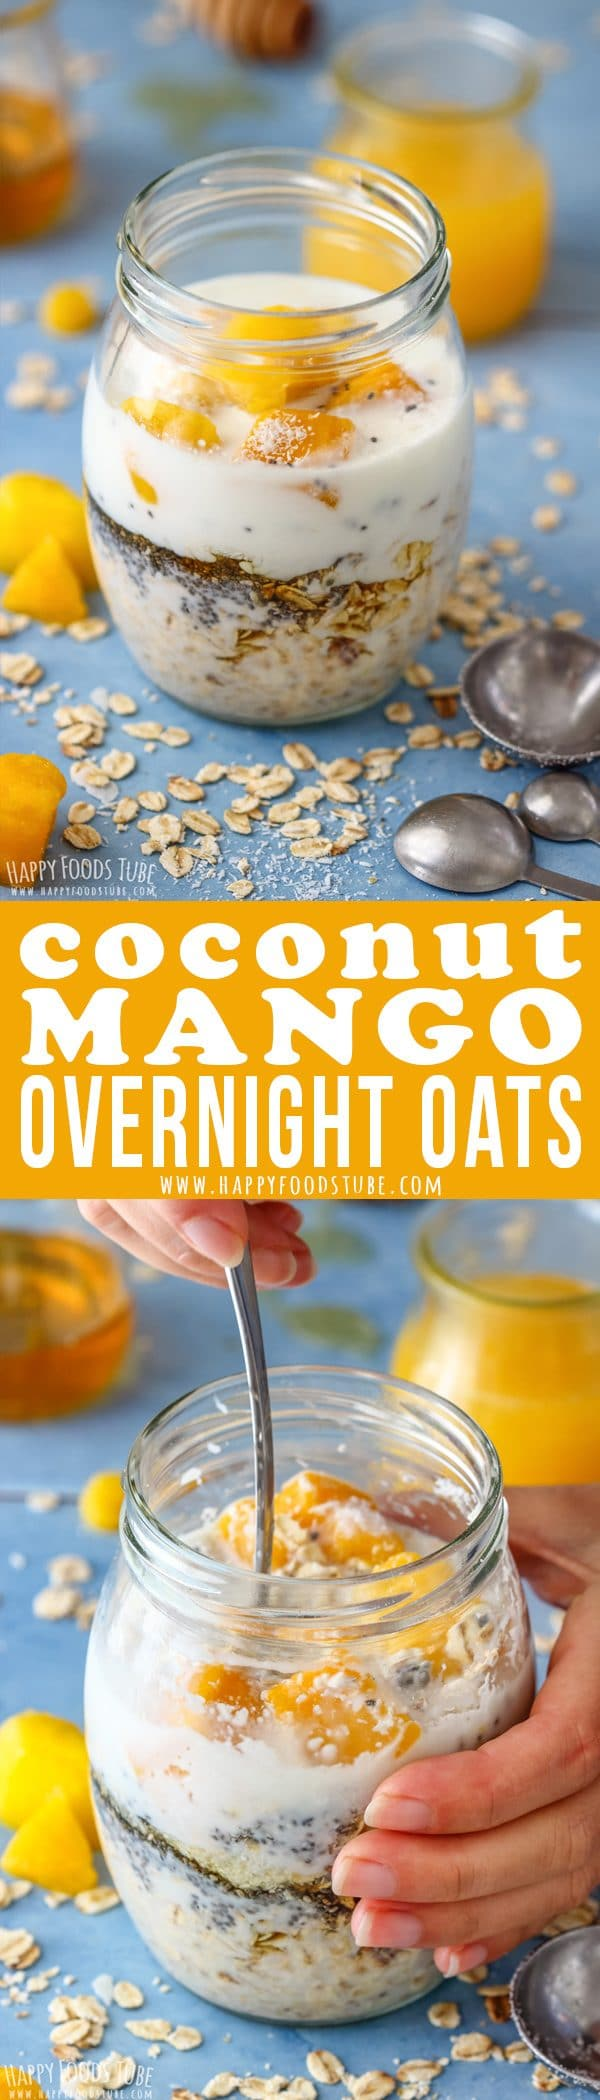 Coconut Mango Overnight Oats Pinterest Collage